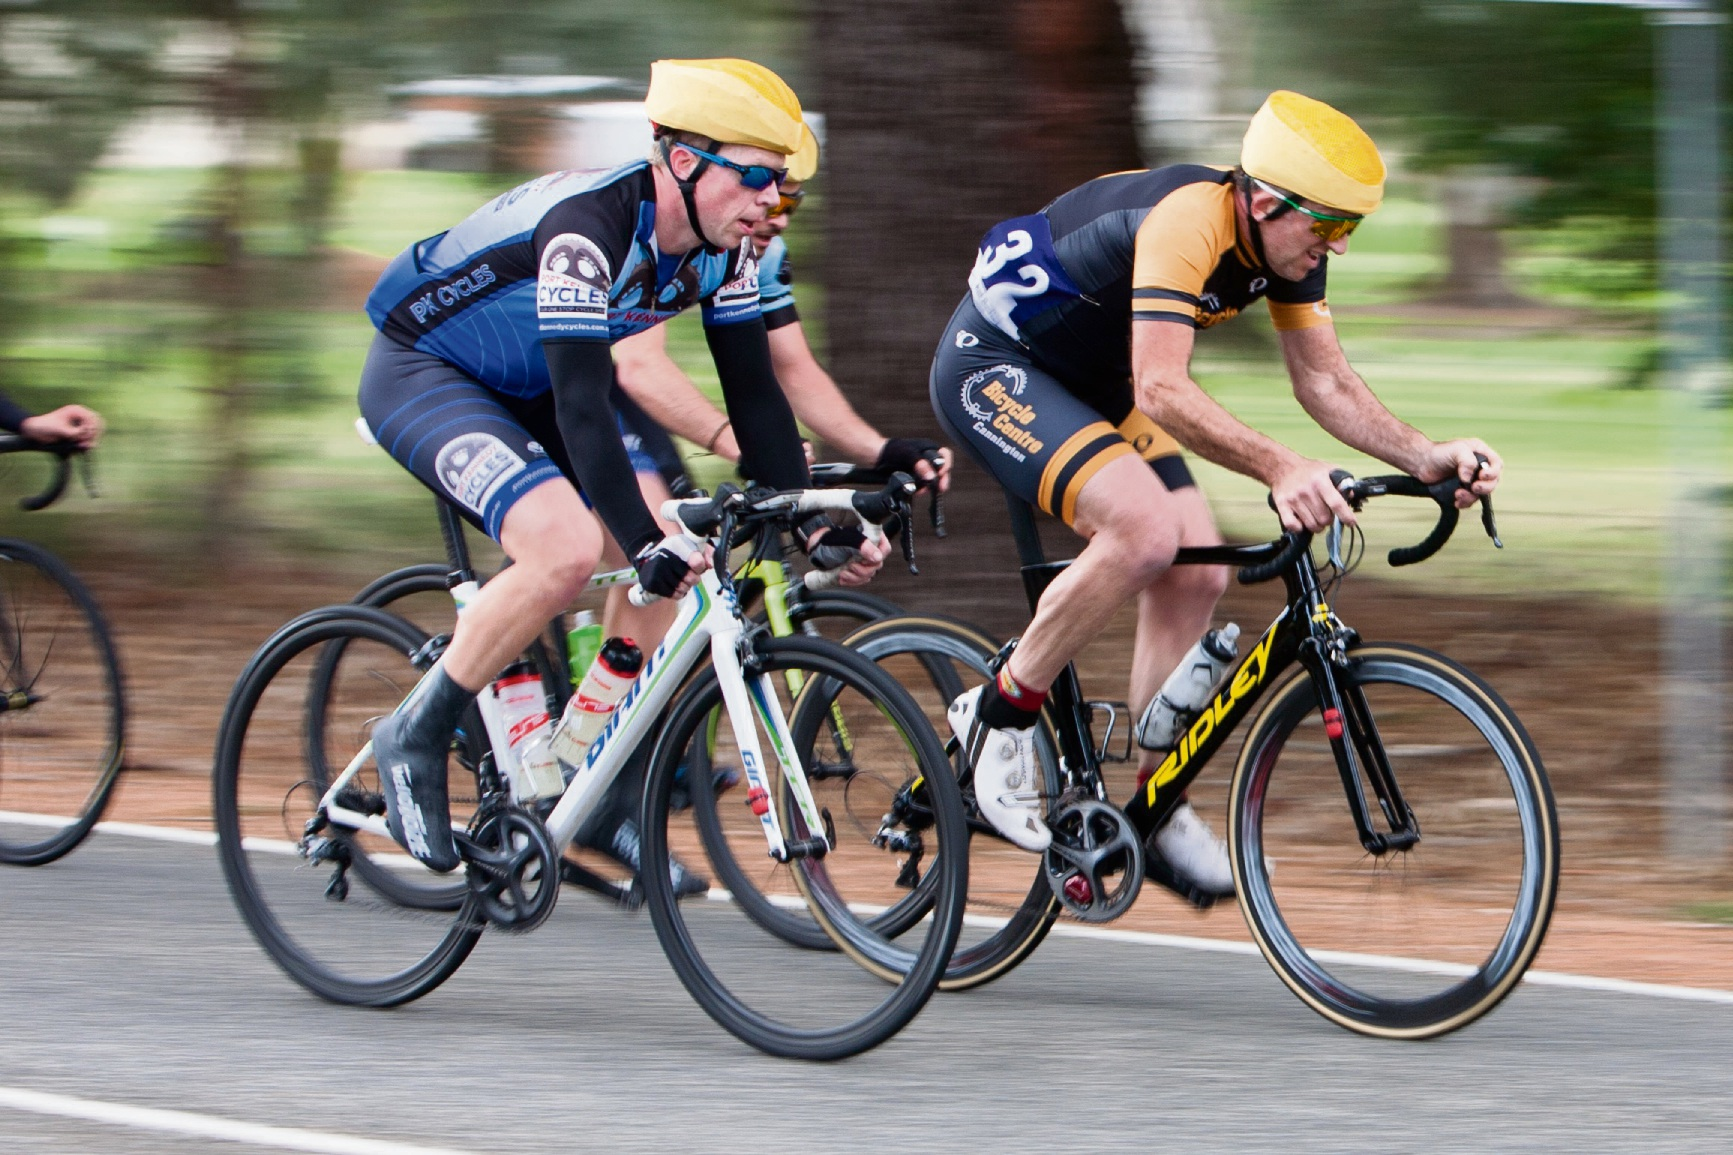 The B-grade break group worked hard to extend their lead at Serpentine. Picture: Nick Cowie